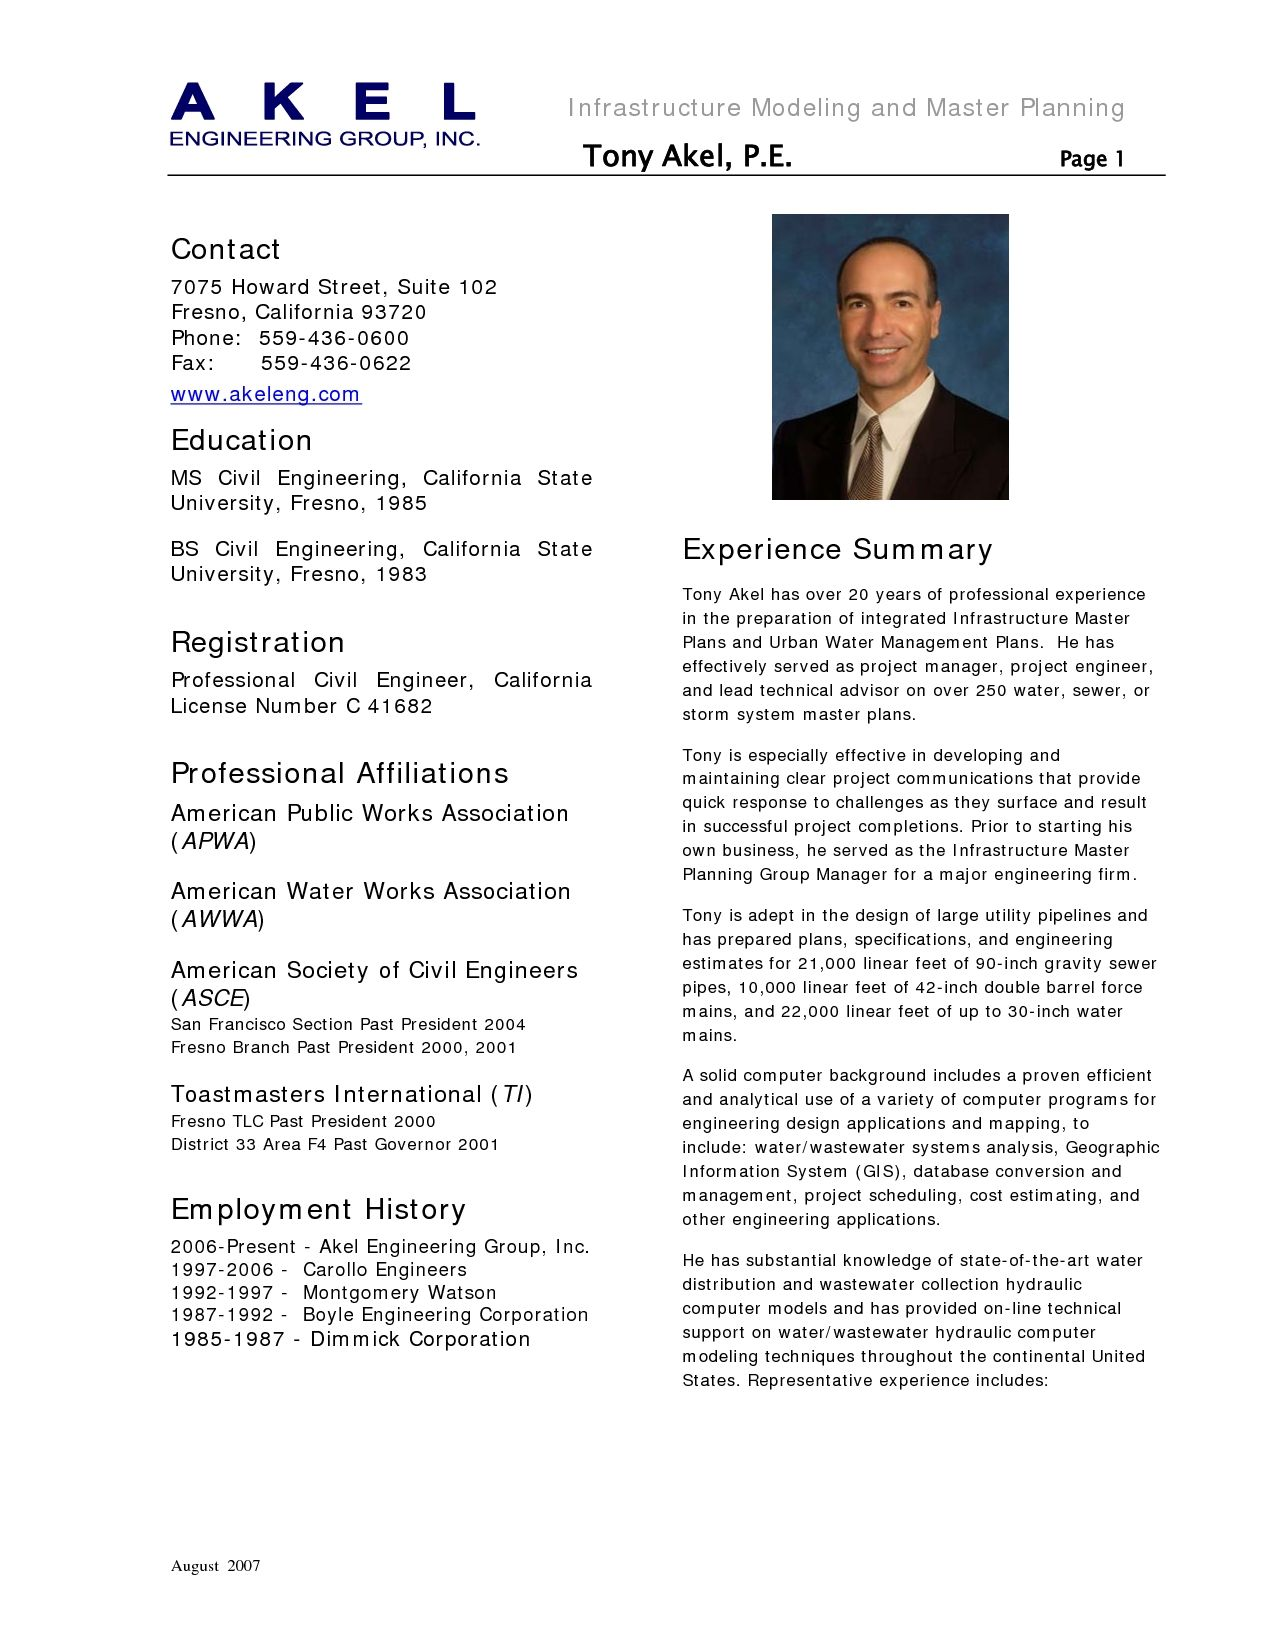 Cv Template Civil Engineer Civil Engineer Resume Engineering